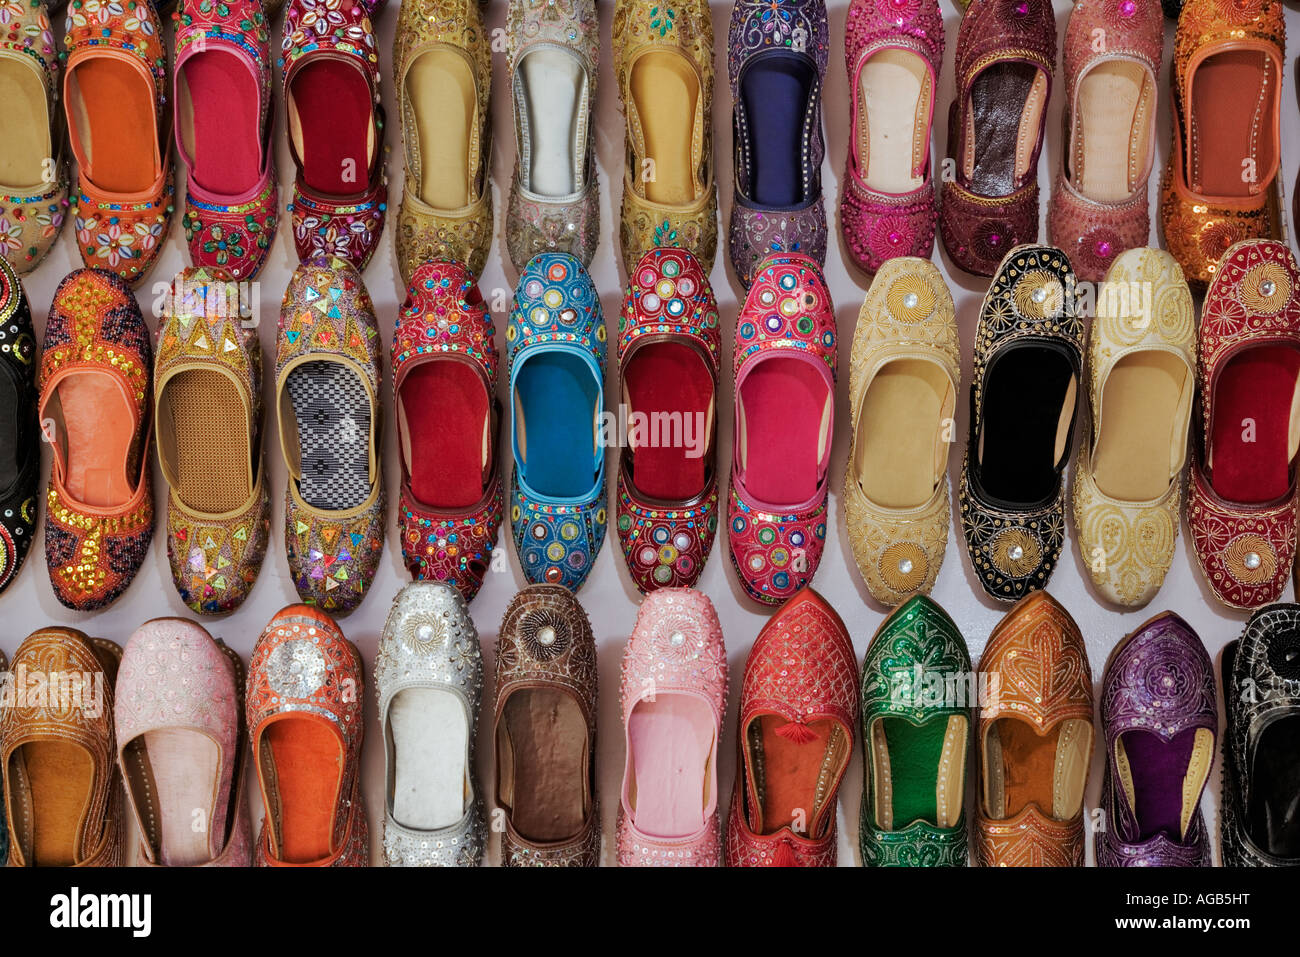 Display of colourful traditional shoes at a market stall India - Stock Image